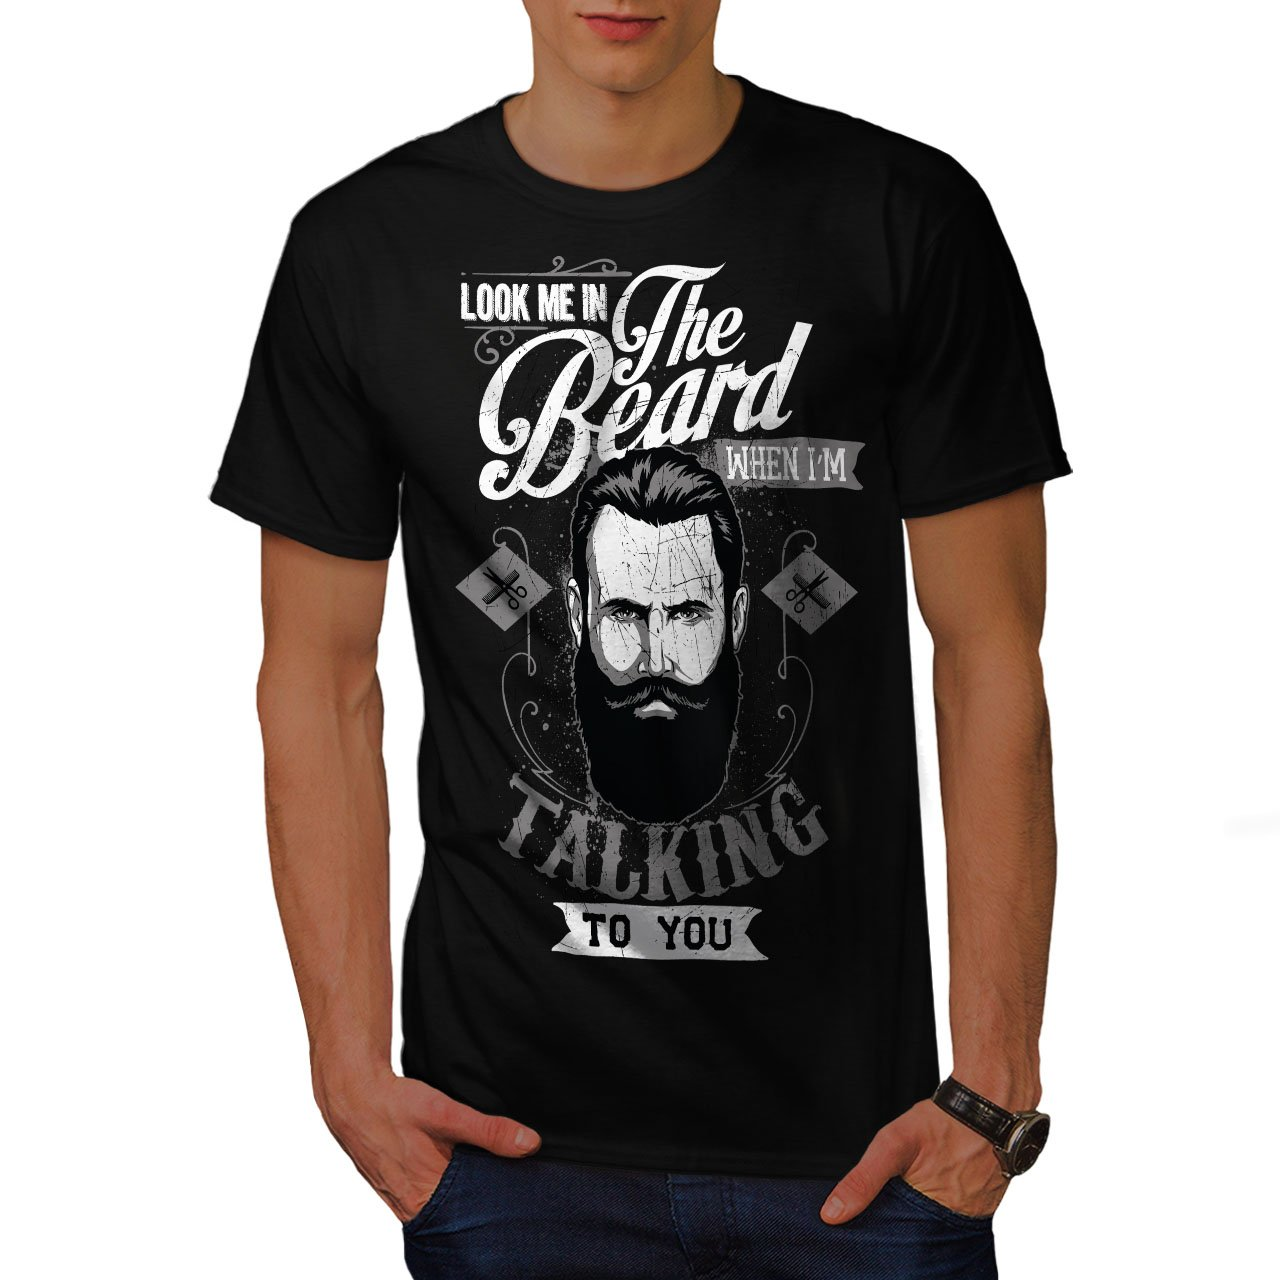 39dd4dafe Wellcoda Look Me in The Beard Mens T-Shirt, When Detailed Design Print Tee:  Amazon.ca: Clothing & Accessories